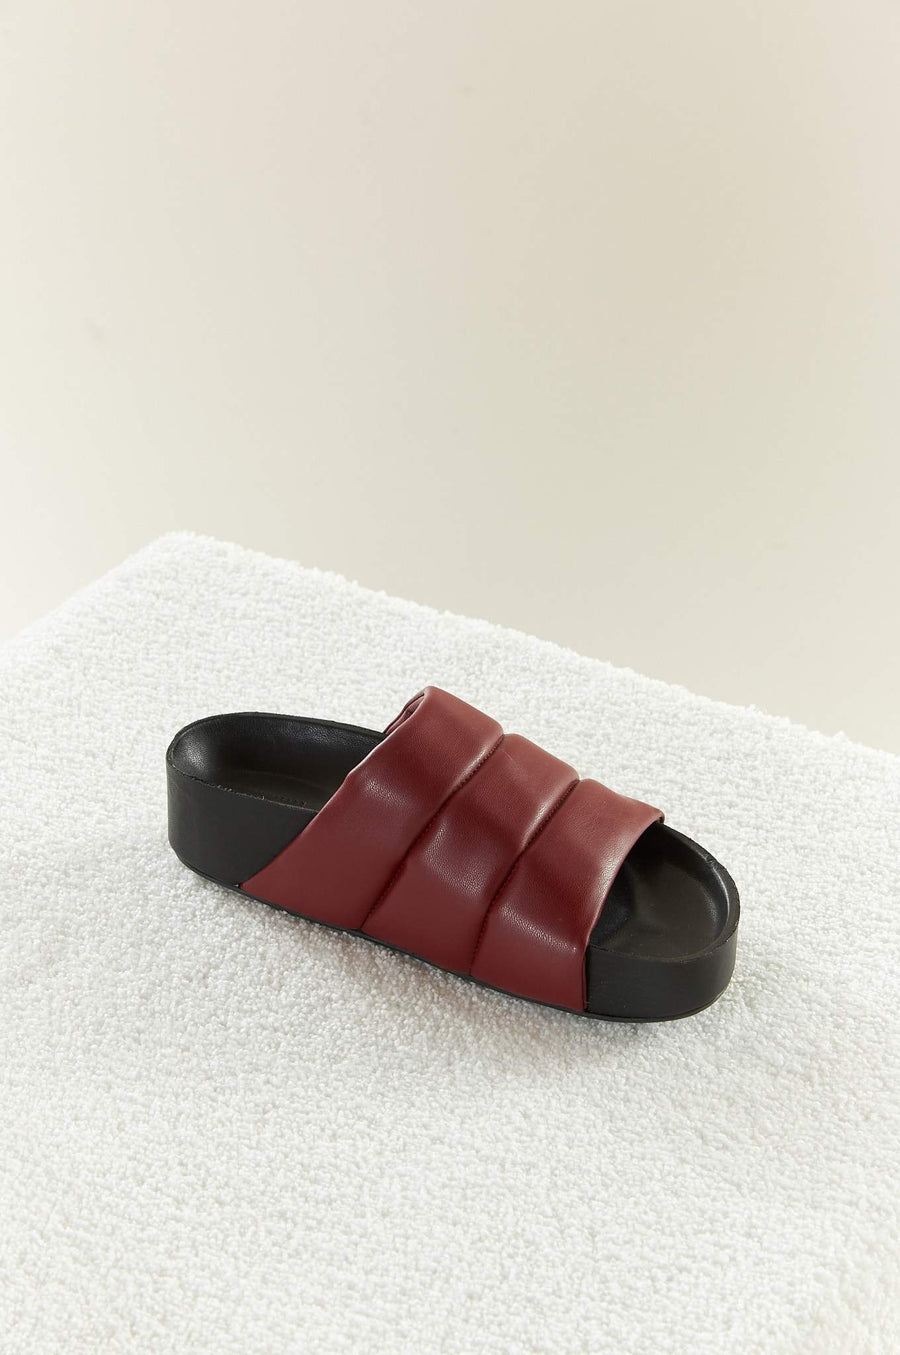 VEGAN LEATHER Dip Slide in Burgundy